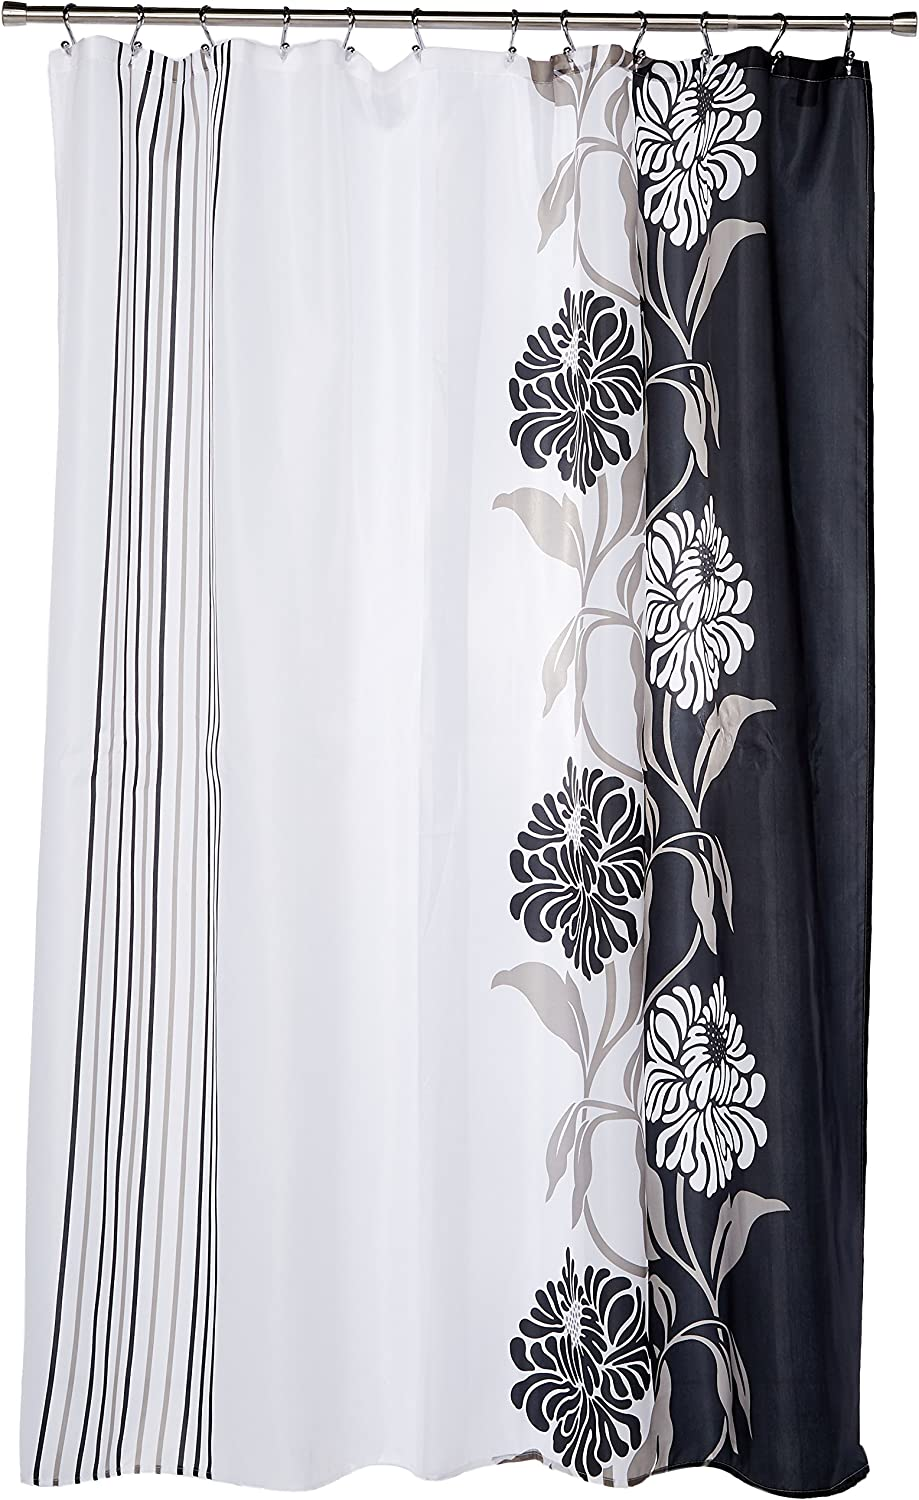 Carnation Home Fashions 100-Percent Polyester Fabric Print 70 by 72-Inch Shower Curtain, Standard, Chelsea, Black/White